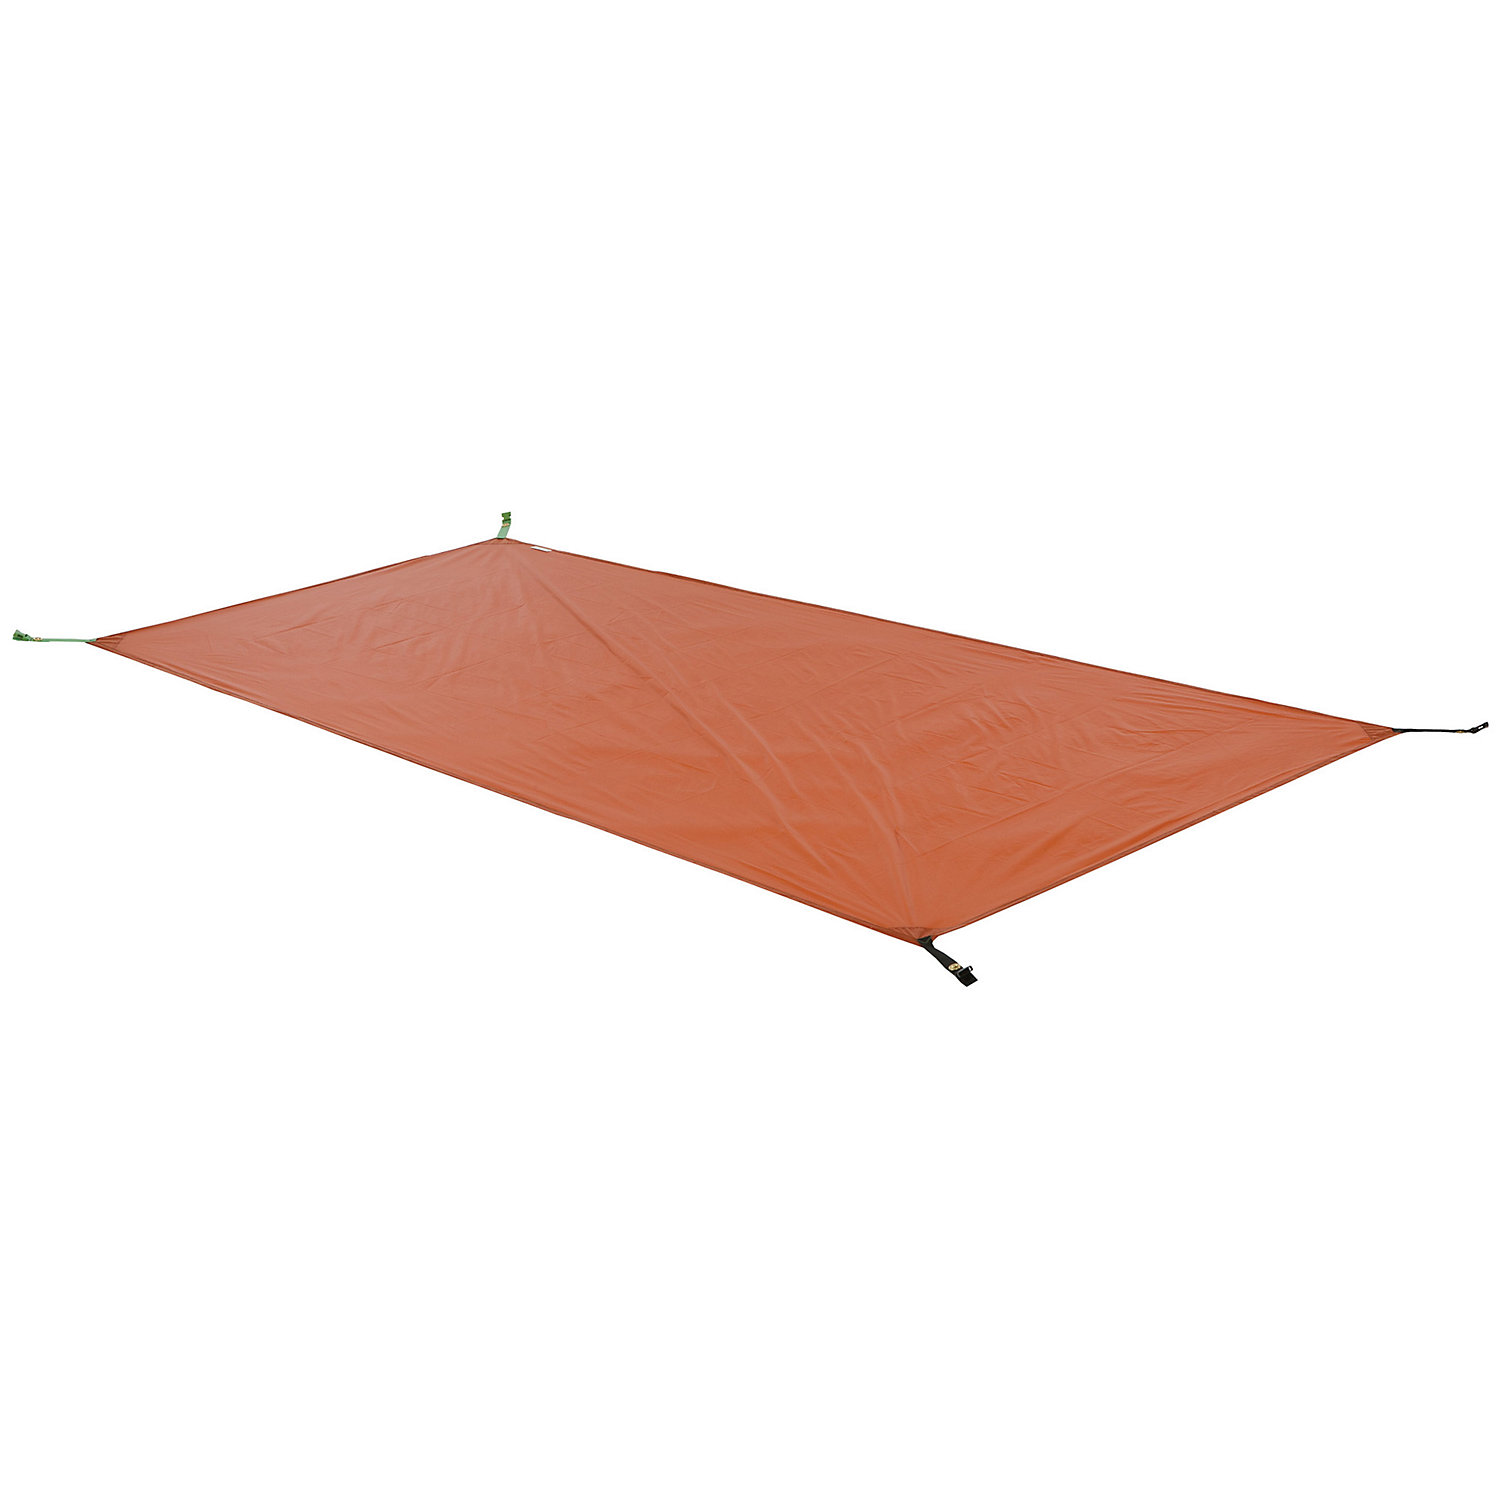 291050b0a79 Big Agnes Copper Spur UL 2 Footprint - Moosejaw